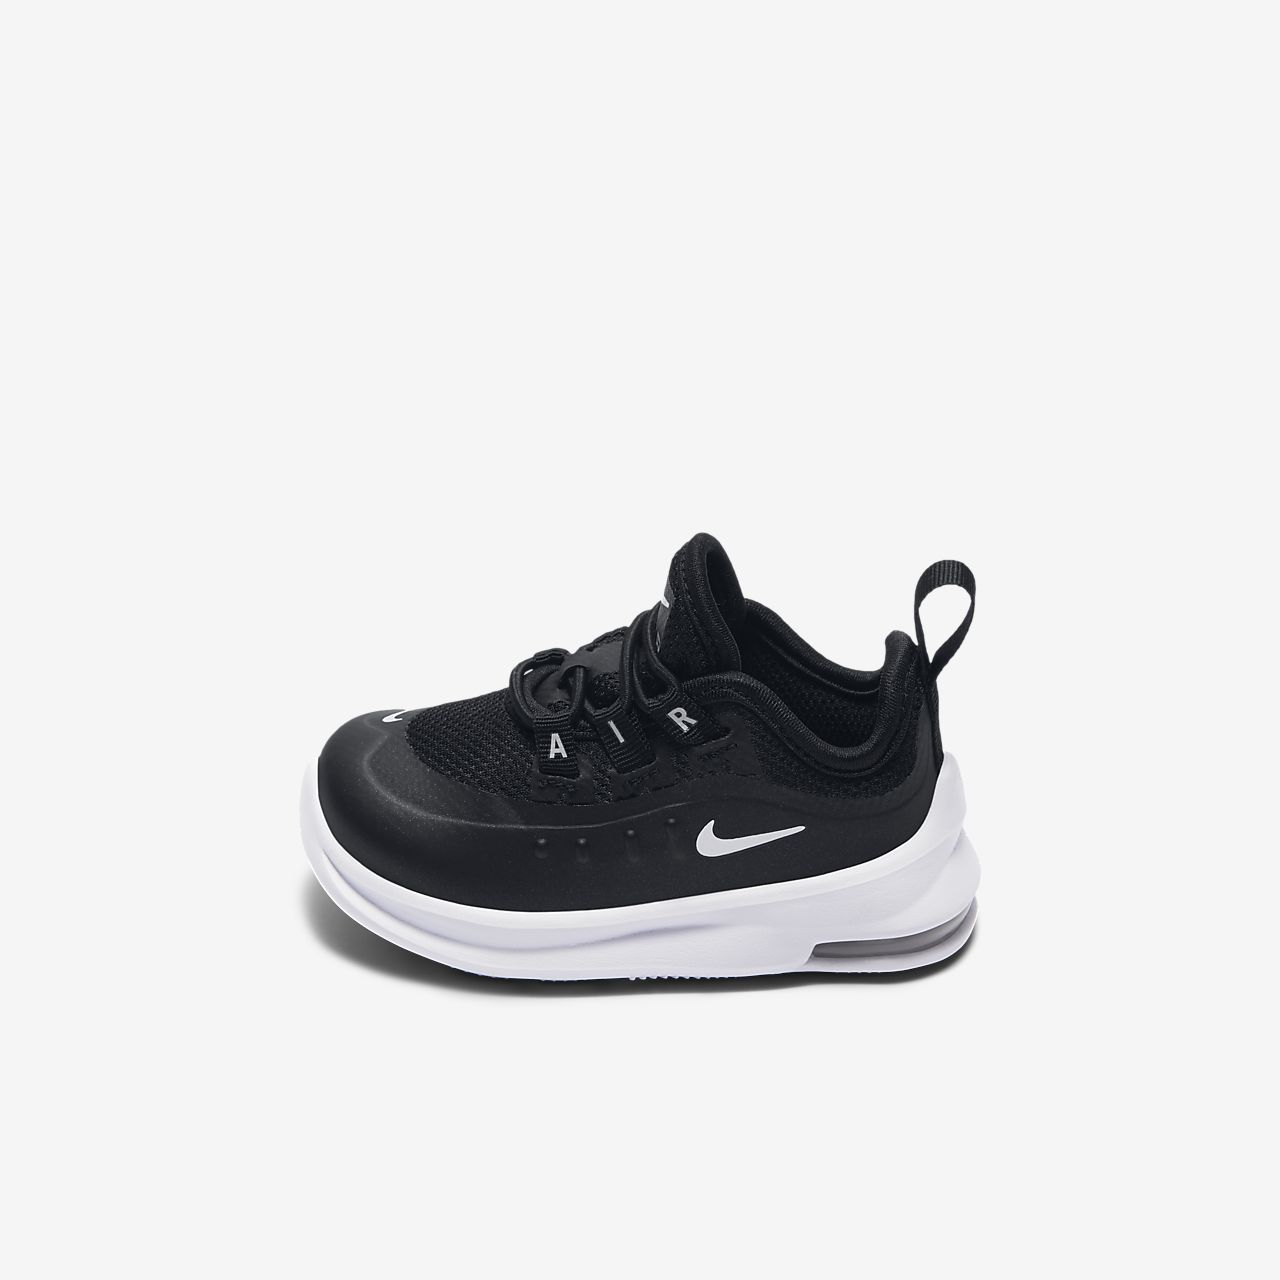 in stock 5dfe4 7b963 ... Nike Air Max Axis Baby  amp  Toddler Shoe